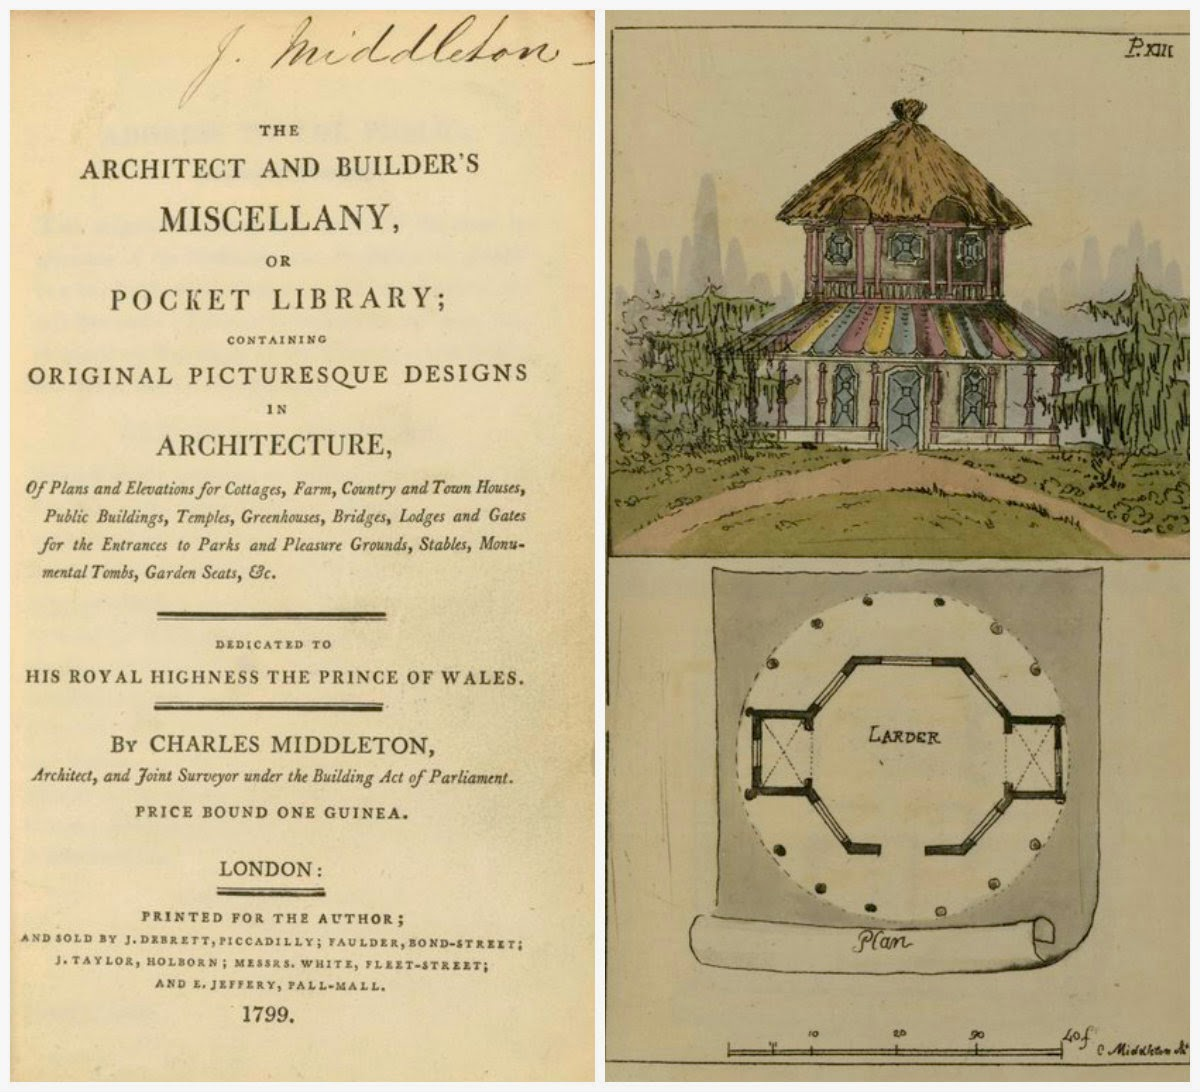 Middleton's miscellany